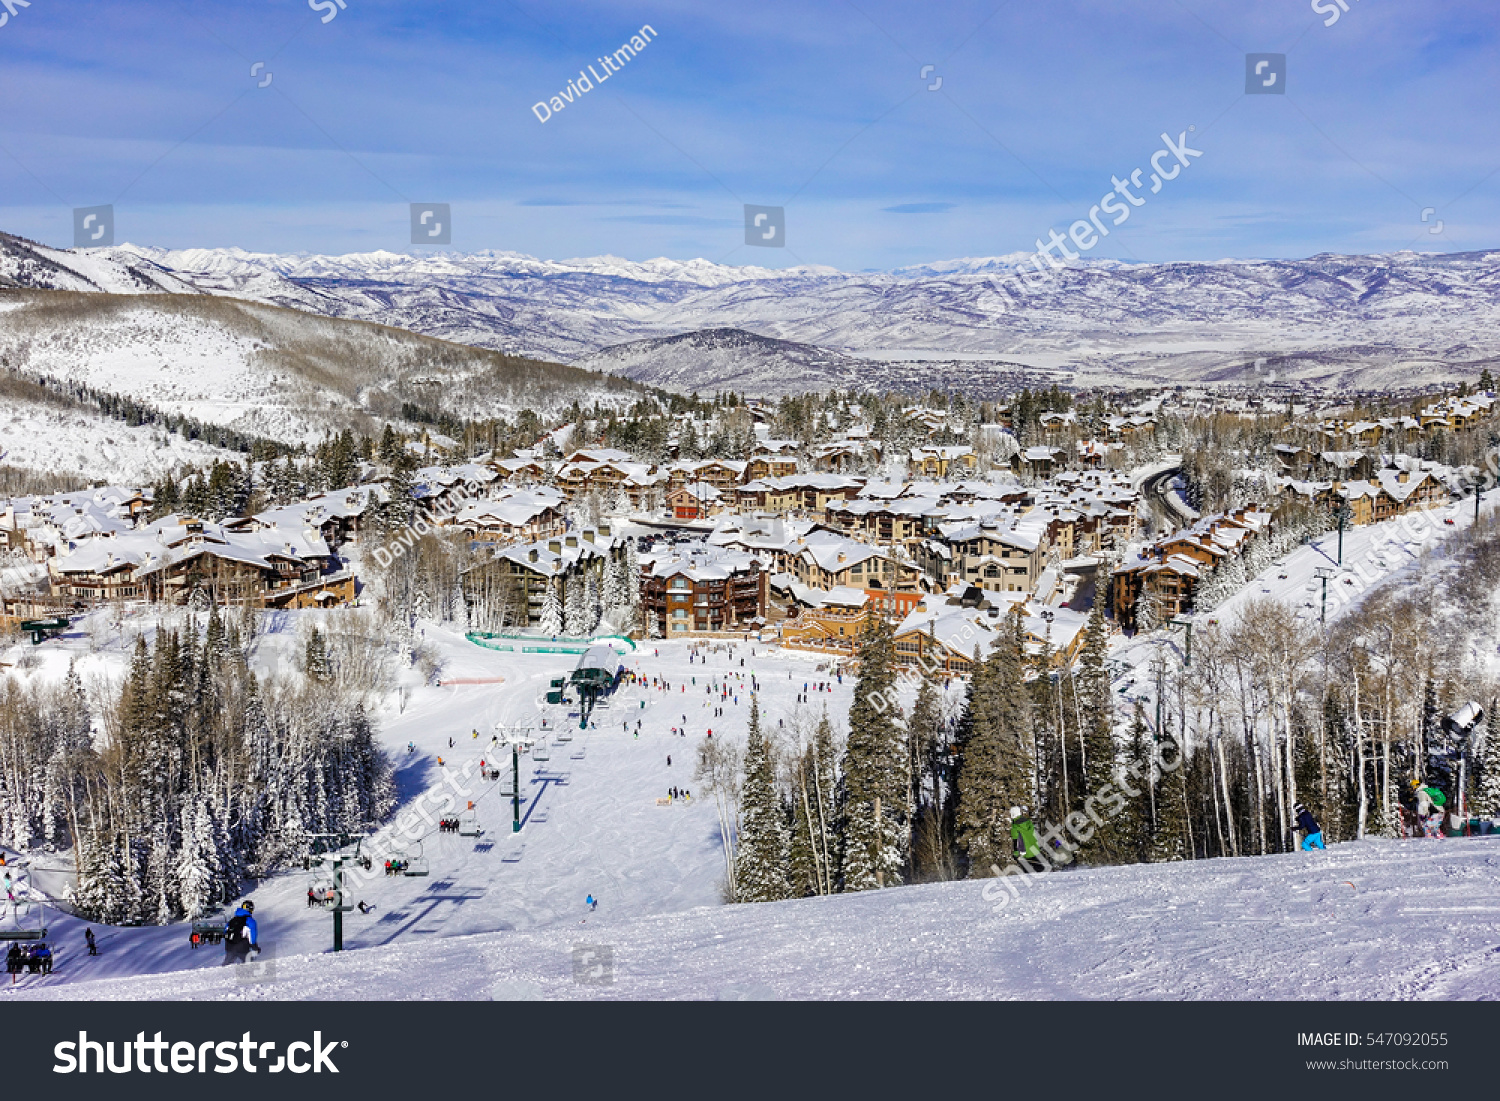 A chair lift brings skiers to top of ski slopes of  Deer Valley Ski Resort, near Park City and The Canyons.  Host to the 2002 Winter Olympics, this mountain is a short drive from Salt Lake City..